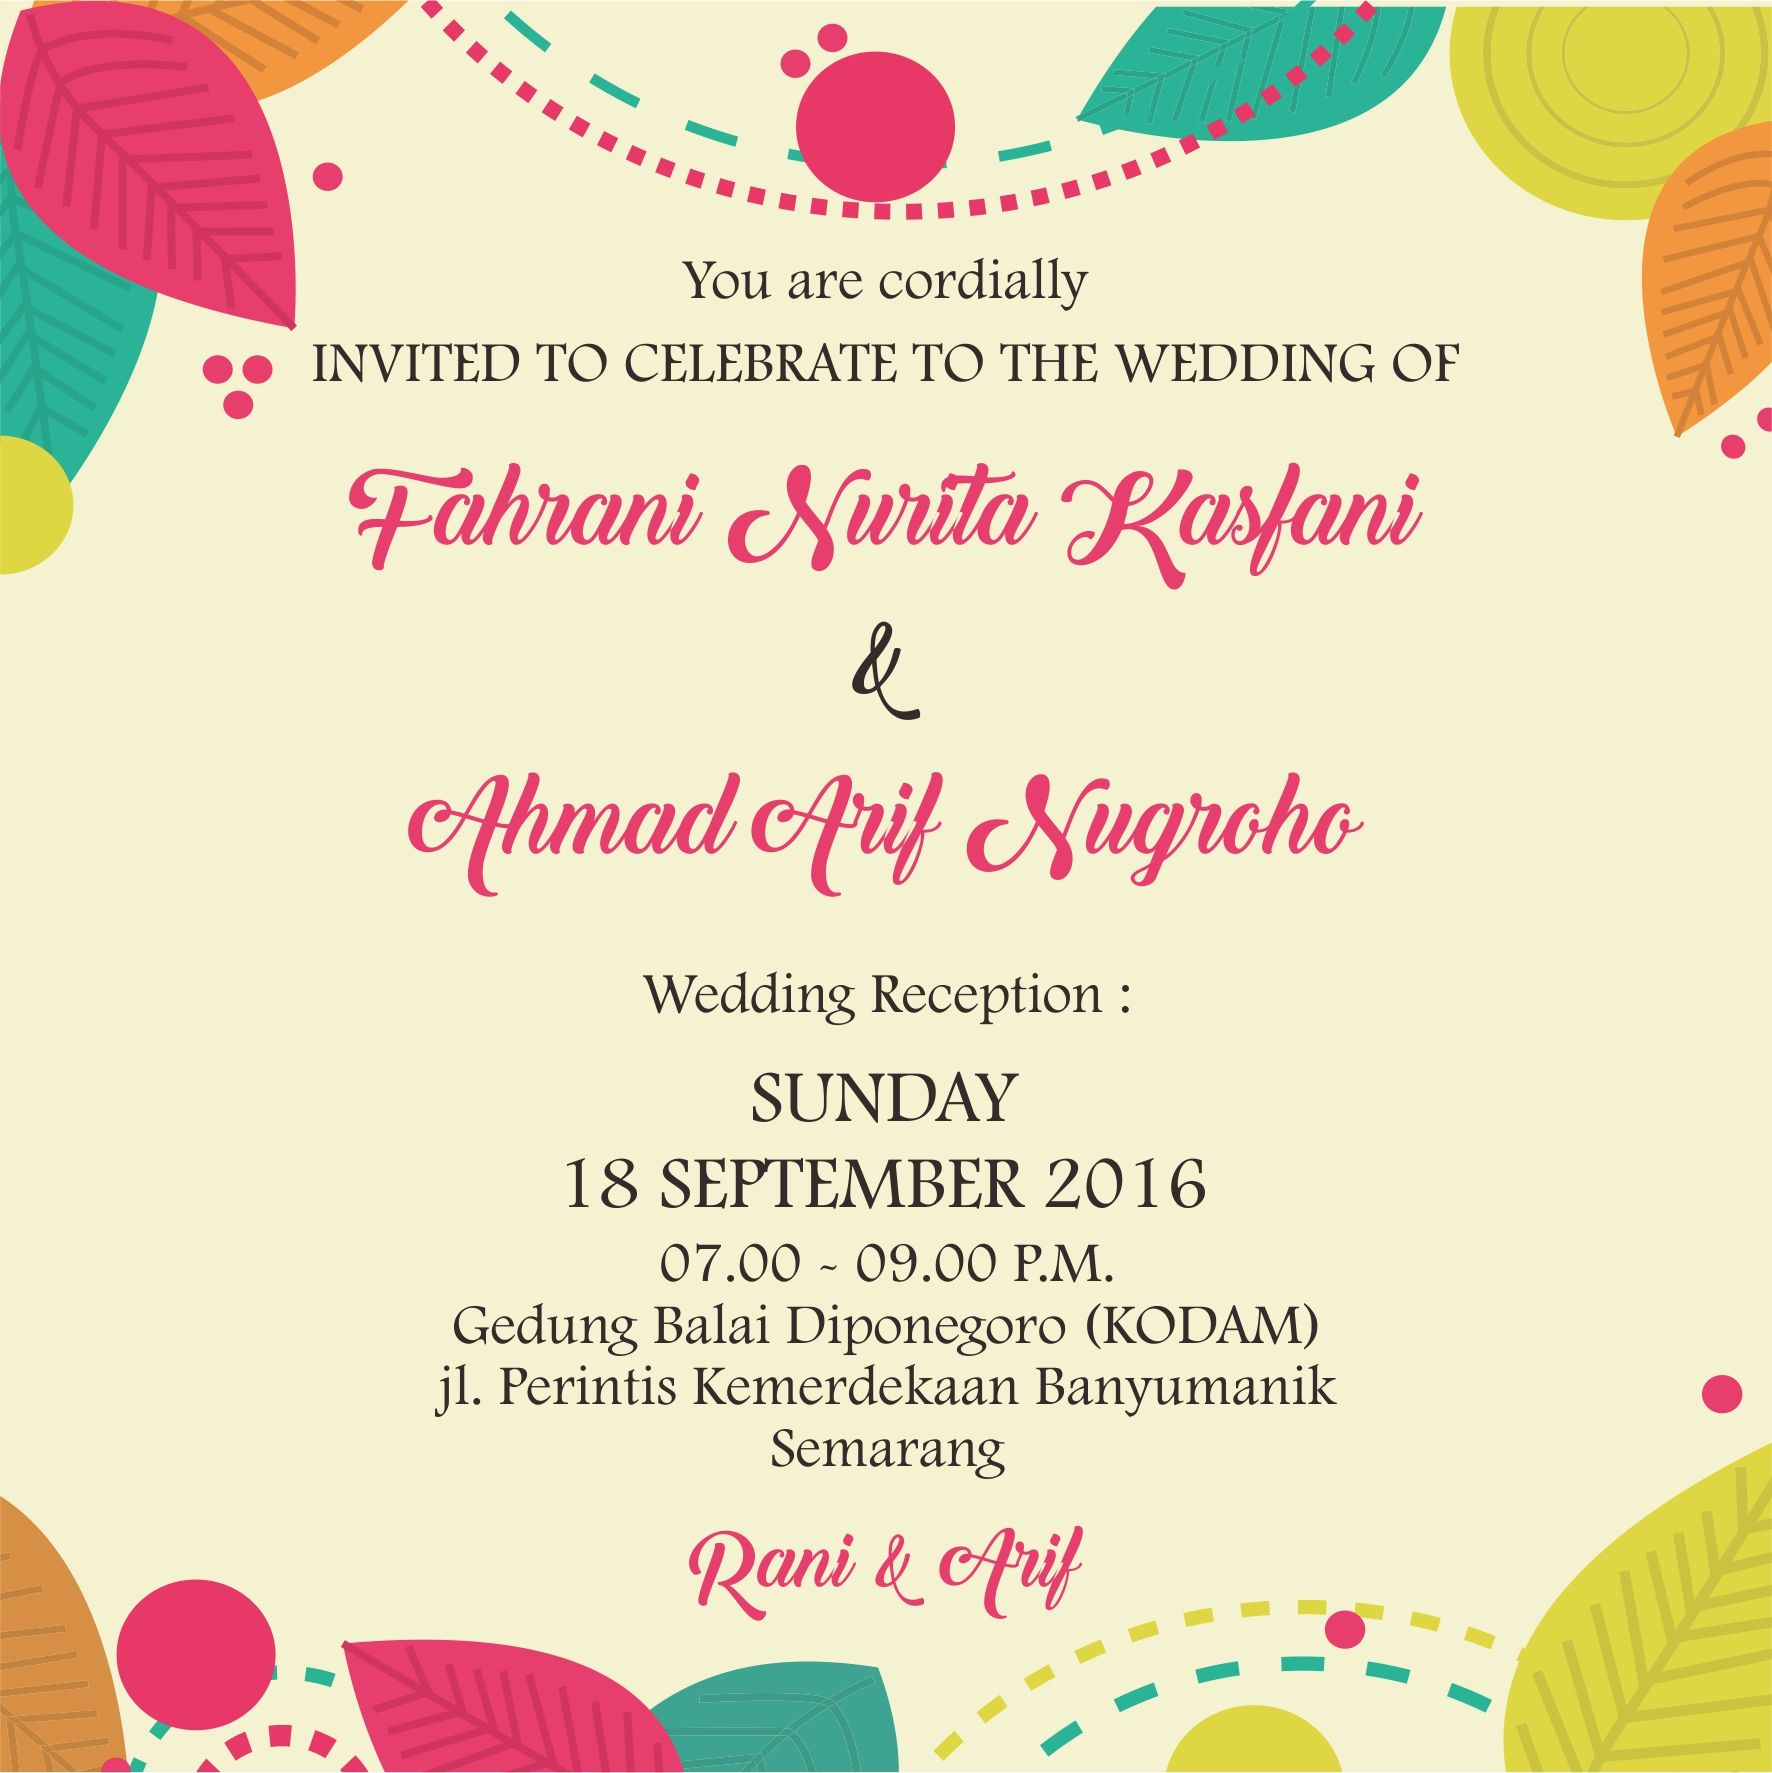 Online wedding invitation, e-invitation, wedding inviation | Wedding ...